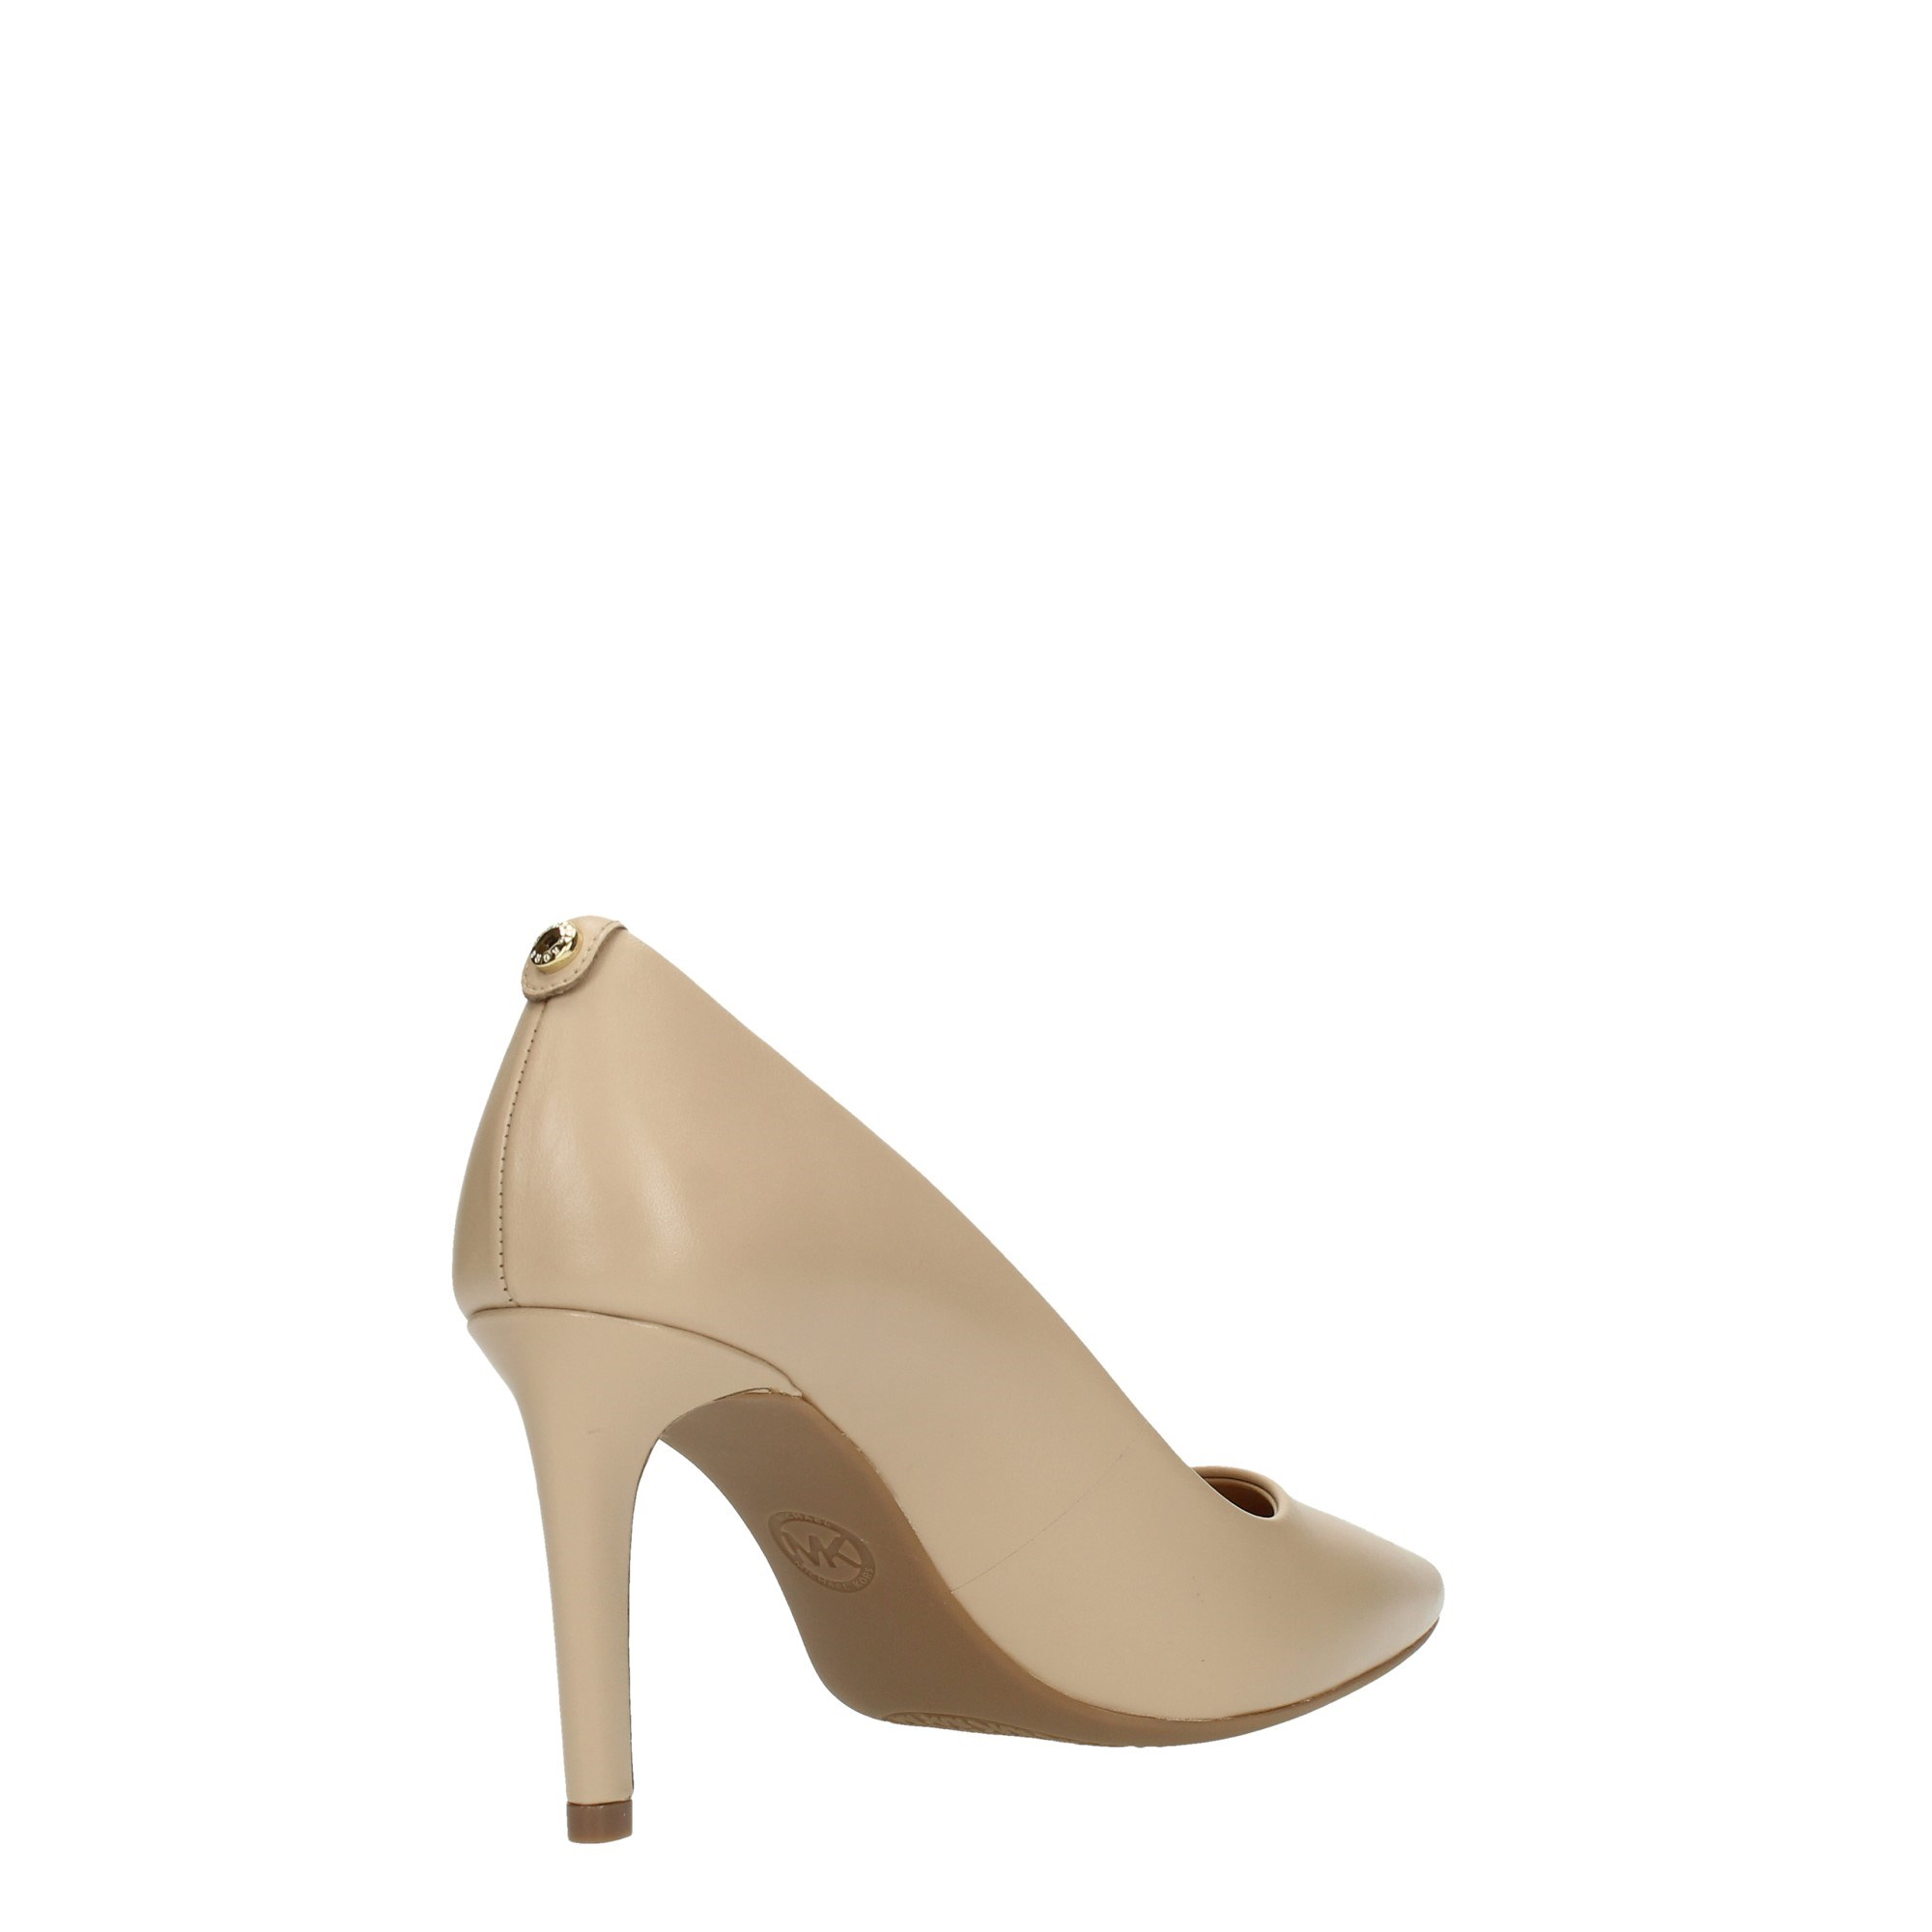 Michael Kors Shoes Women Cleavage And Heeled Shoes Beige 40F6DOMP1L